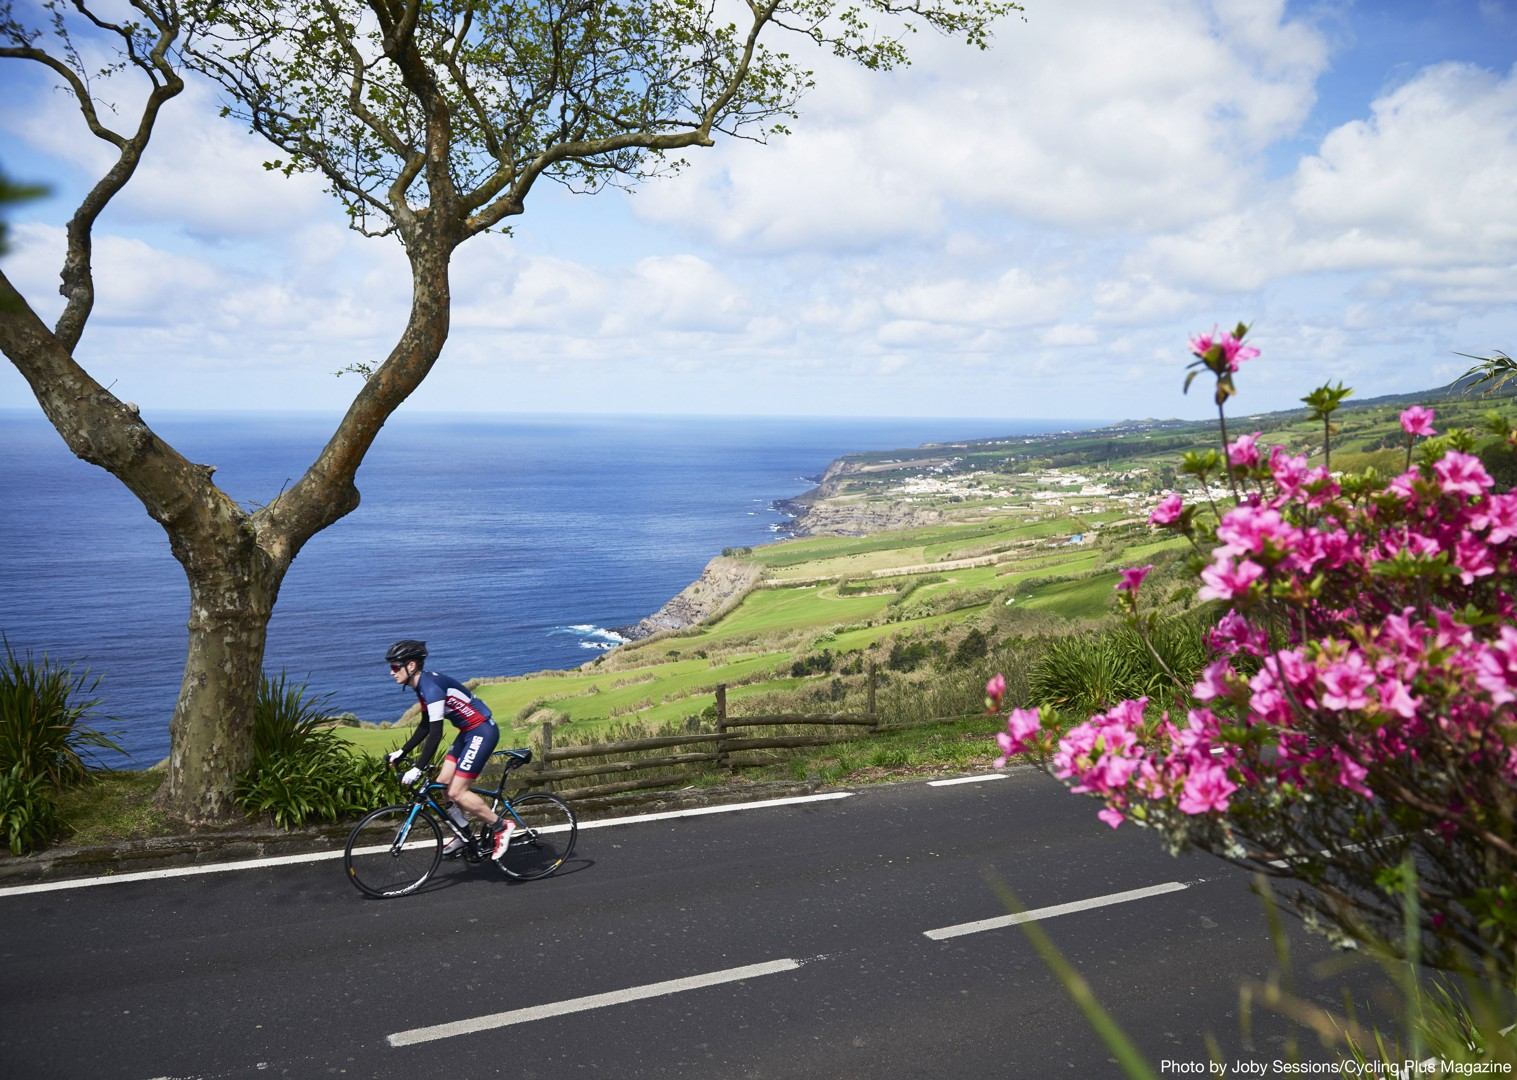 guided-road-cycling-holiday-portugal-the-azores-sao-miguel.JPG - The Azores - Lost World of Sao Miguel - Guided Road Cycling Holiday - Road Cycling